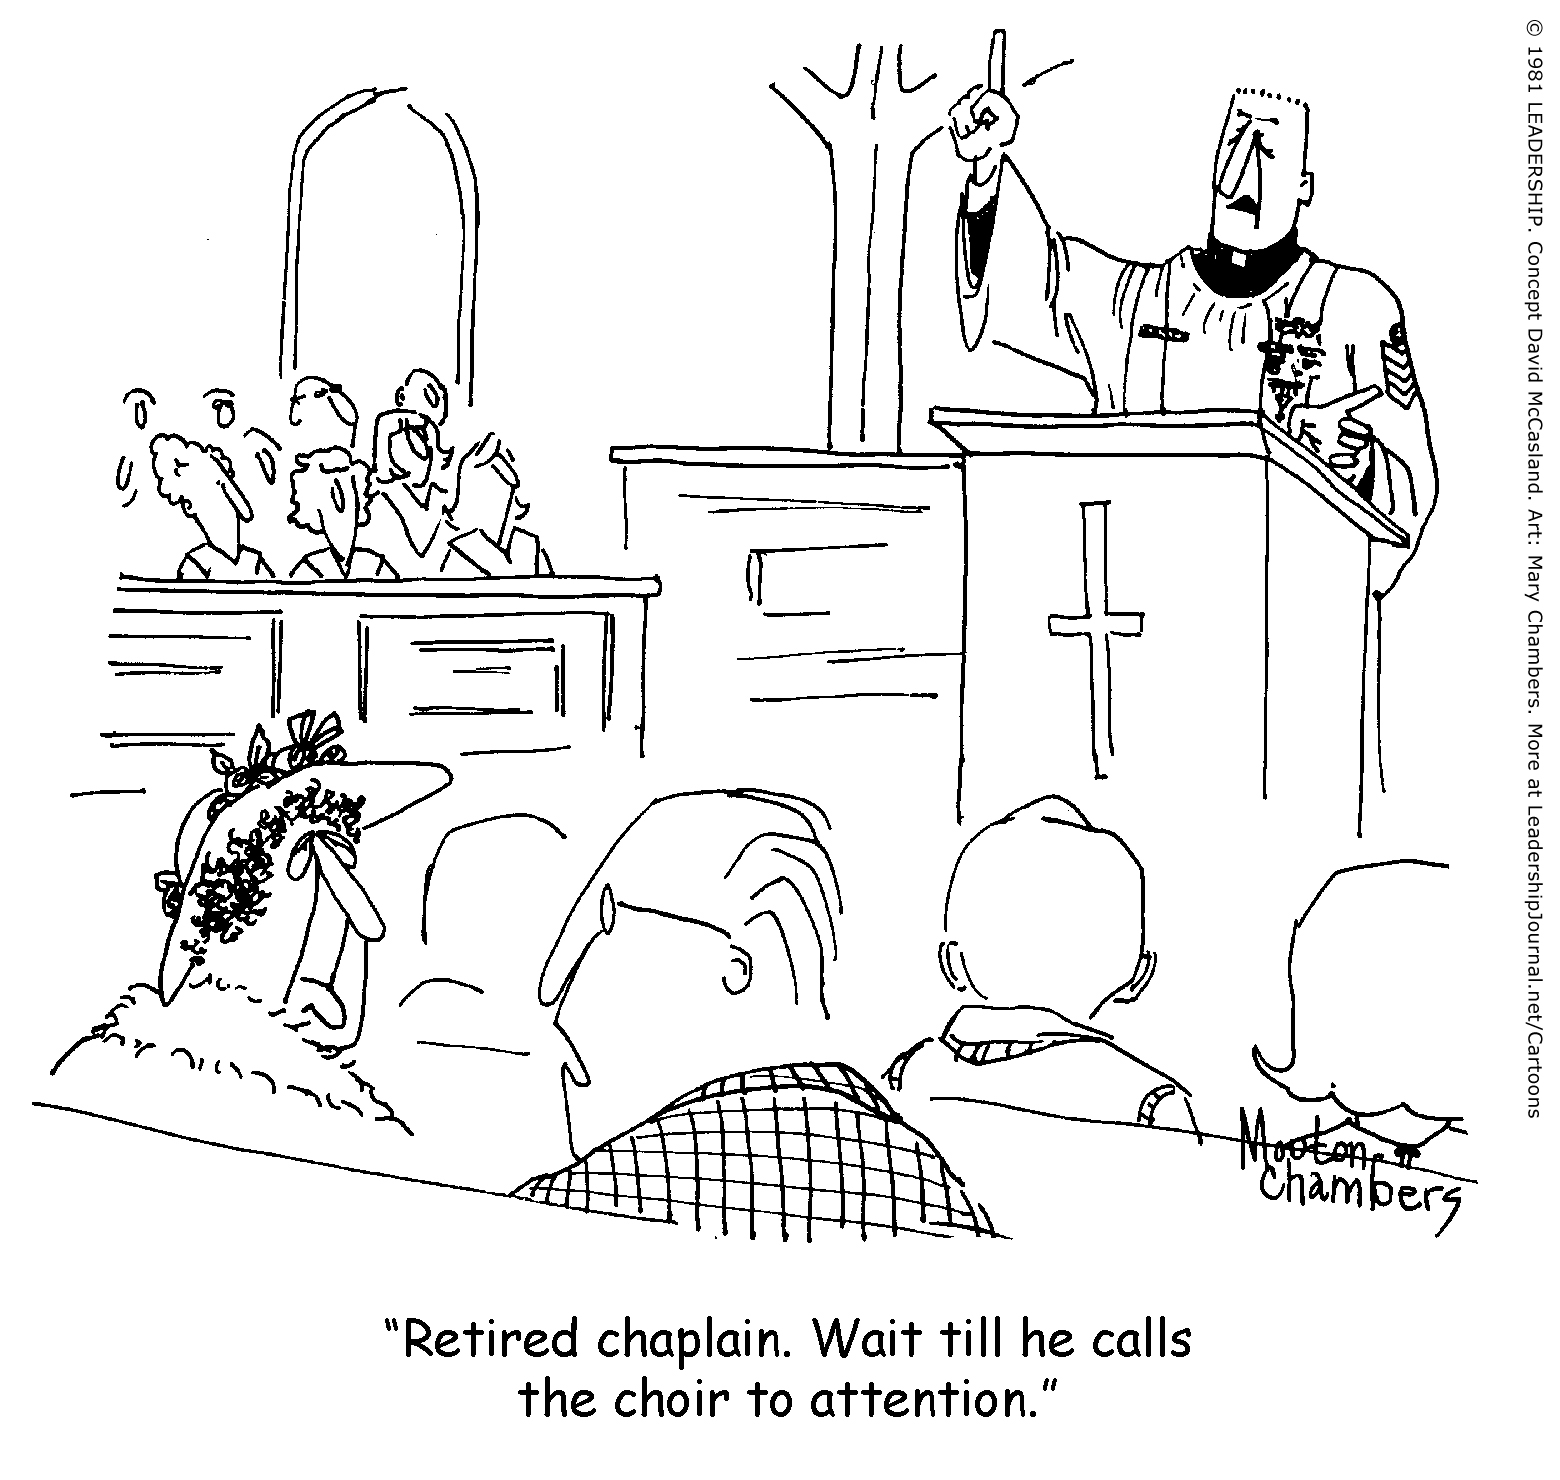 Military Chaplain In The Pulpit